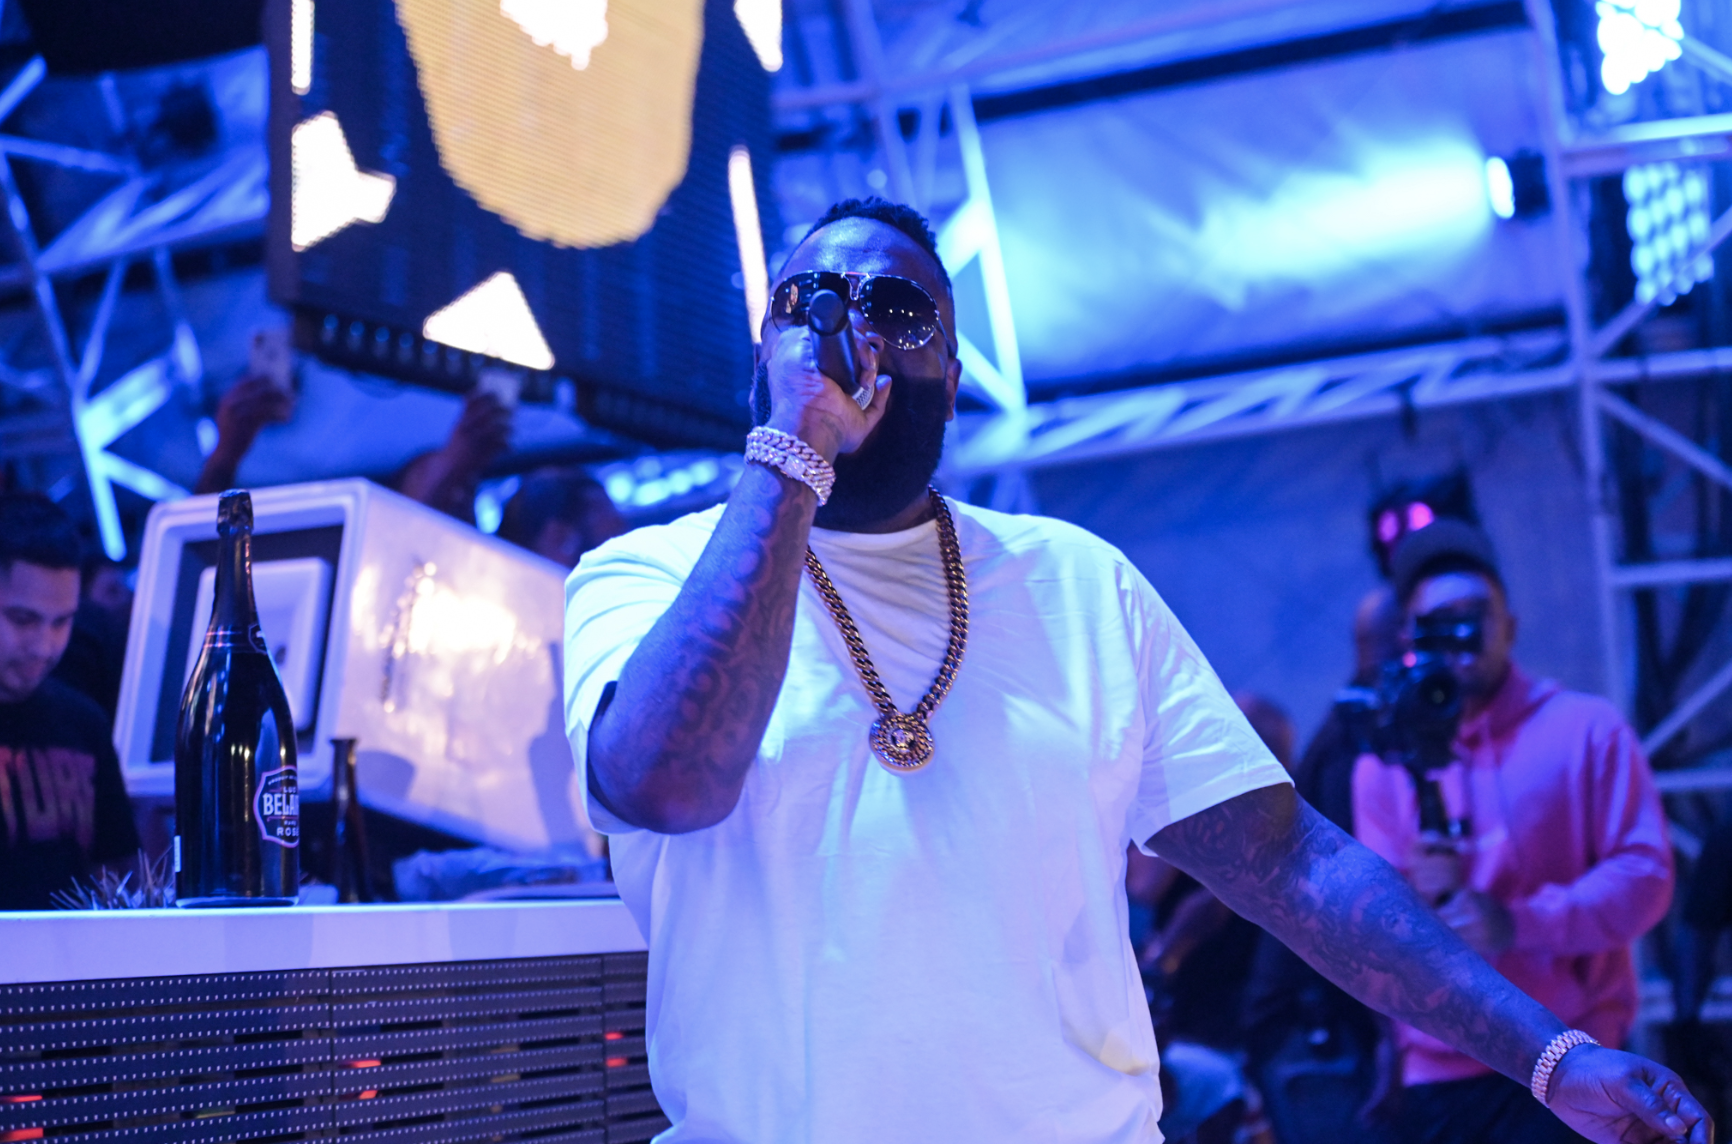 Rick Ross  celebrates his upcoming album release at   DAYLIGHT Beach Club   's ECLIPSE  pool party at Mandalay Bay Resort and Casino on Thursday, August 1. Images Courtesy of Daylight.